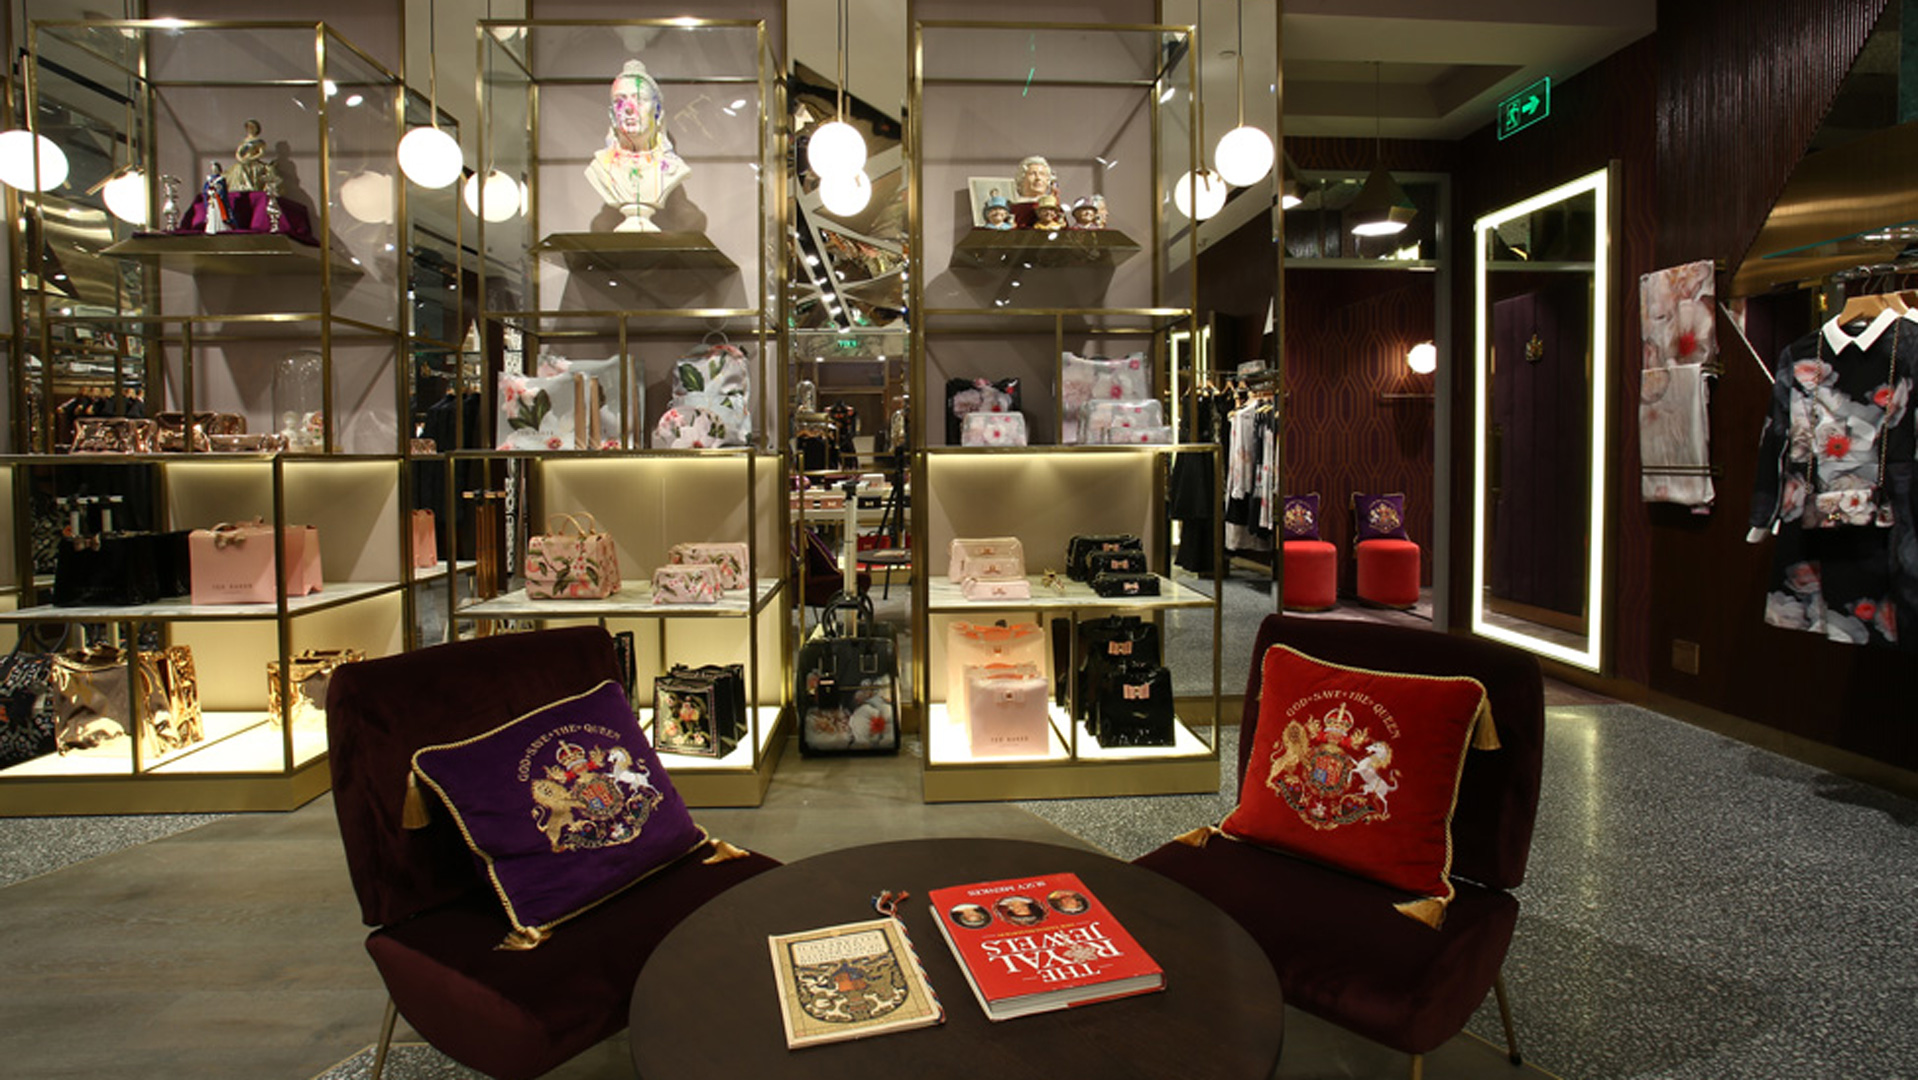 19cbeeca74cca London s Ted Baker Opens Their First Indian Store In Delhi! - DforDelhi